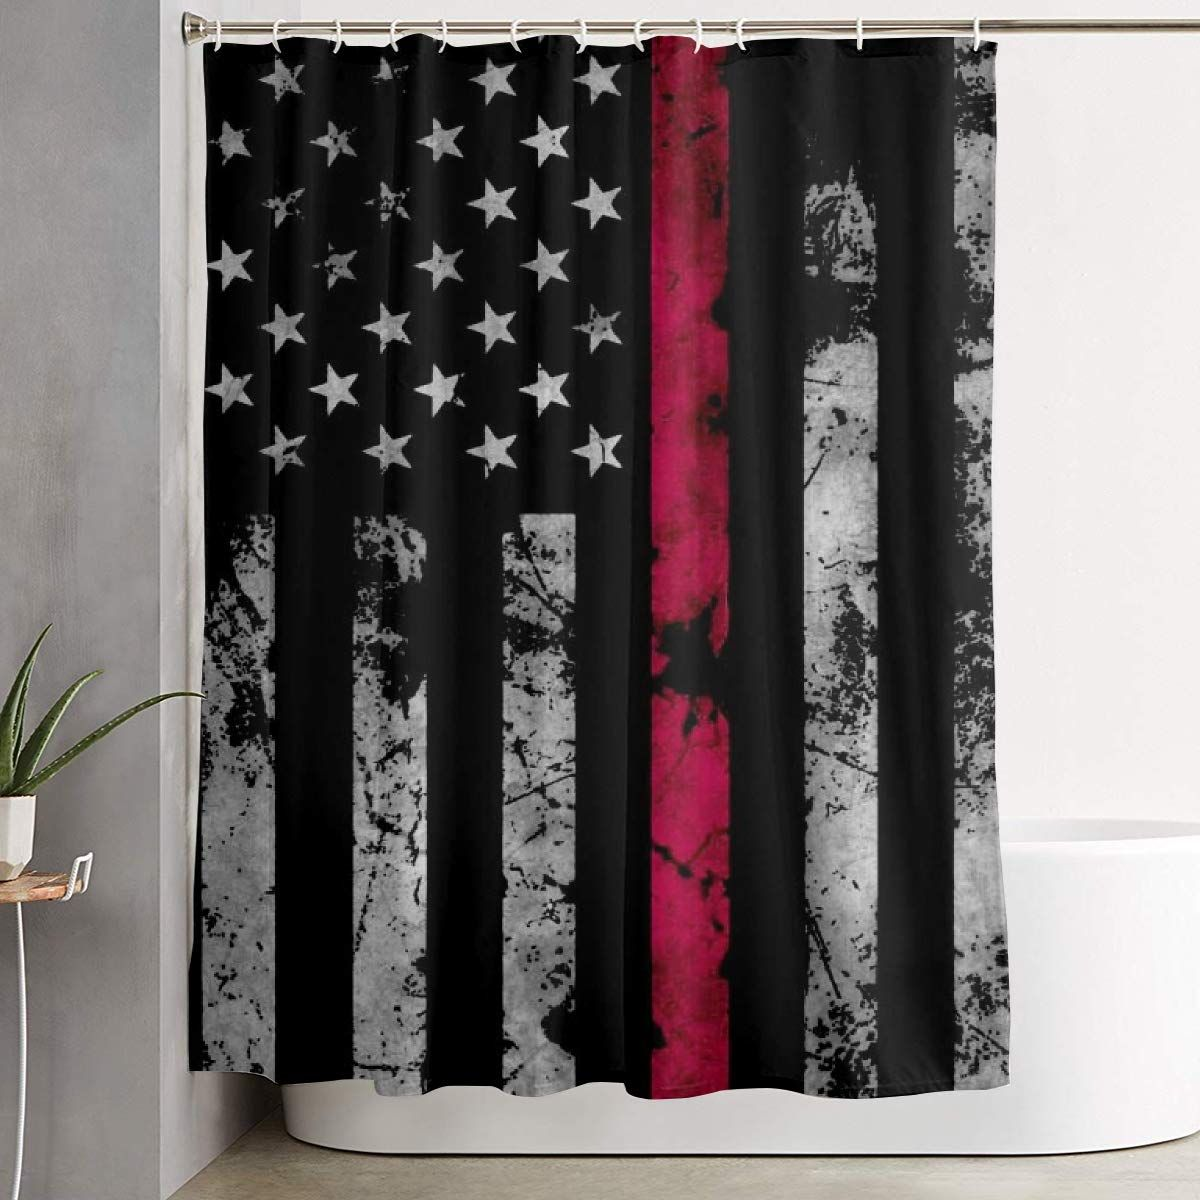 NEW BEST American-Tour-Flag Waterproof Shower Curtain Exclusive Design